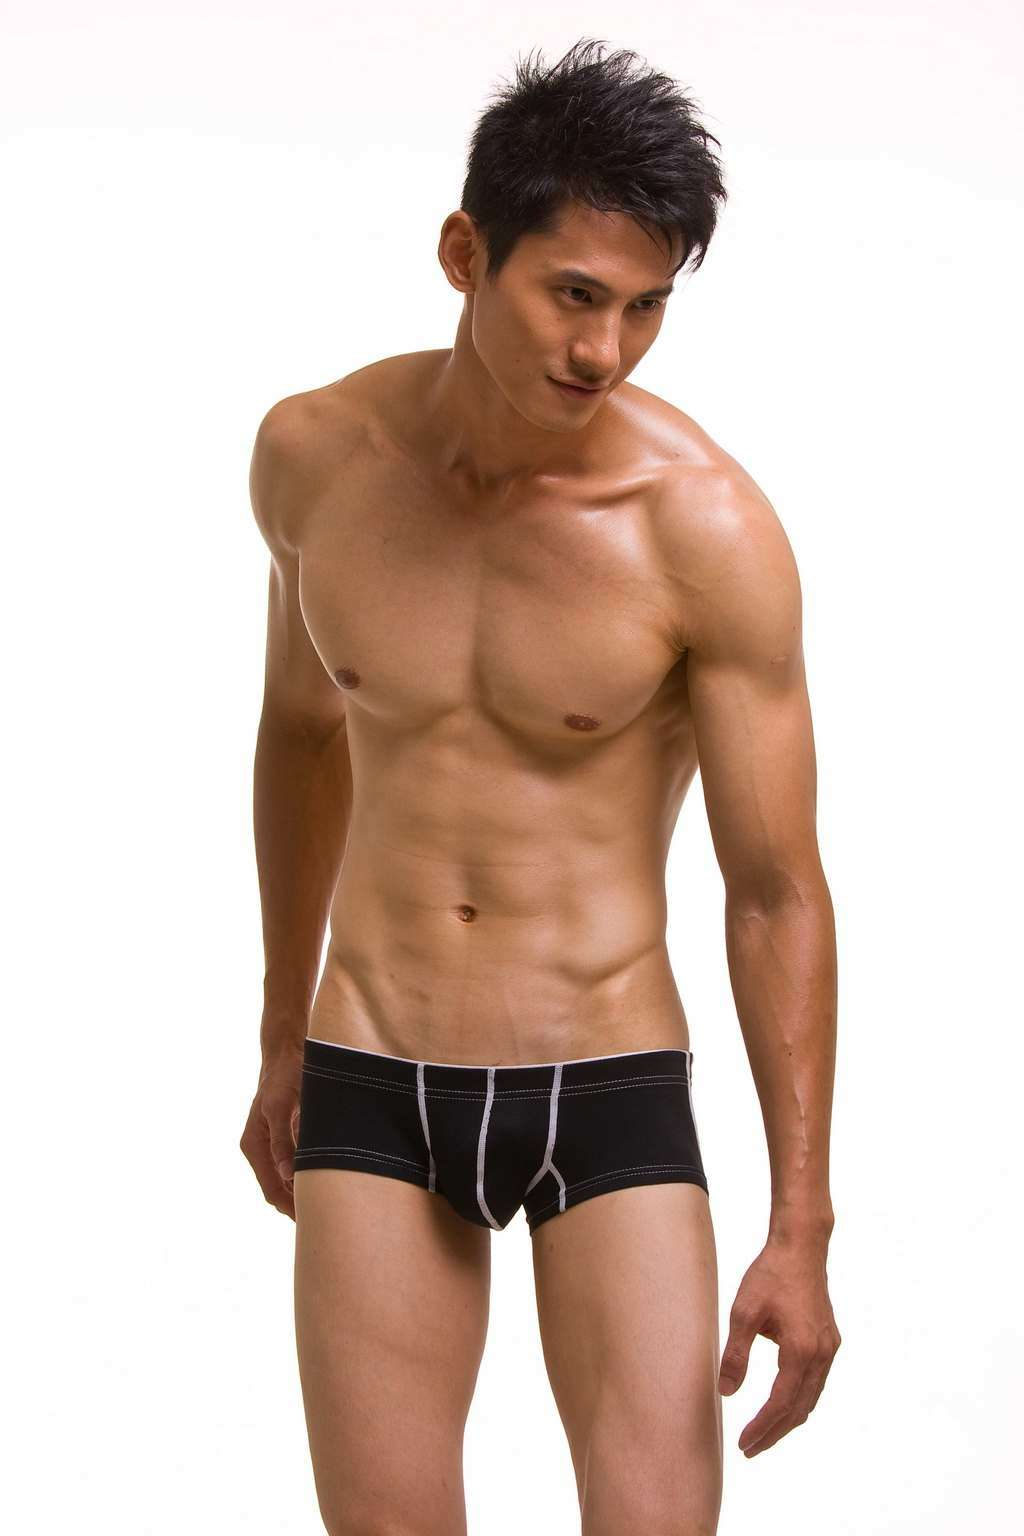 Shop mens underwear for the best in comfort! Find your favorite styles: boxers, briefs or trunks. Jockey has all your underwear needs!